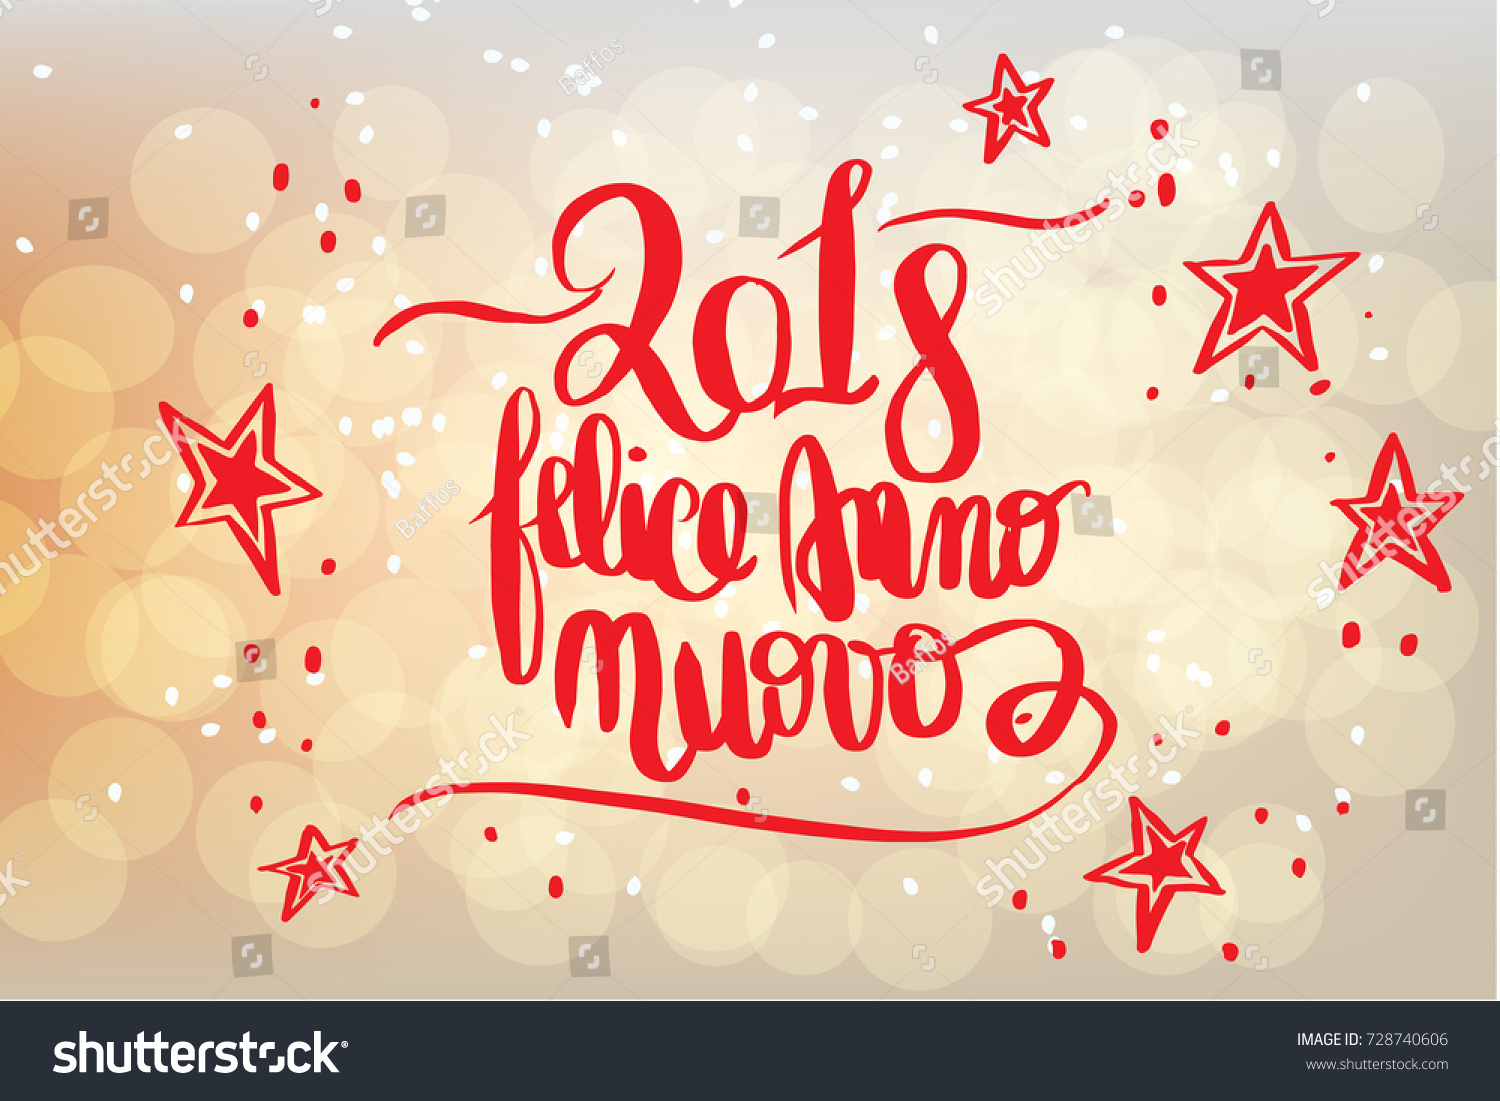 Felice anno nuovo happy new year stock illustration 728740606 felice anno nuovo happy new year in italian greetings card handwritten on m4hsunfo